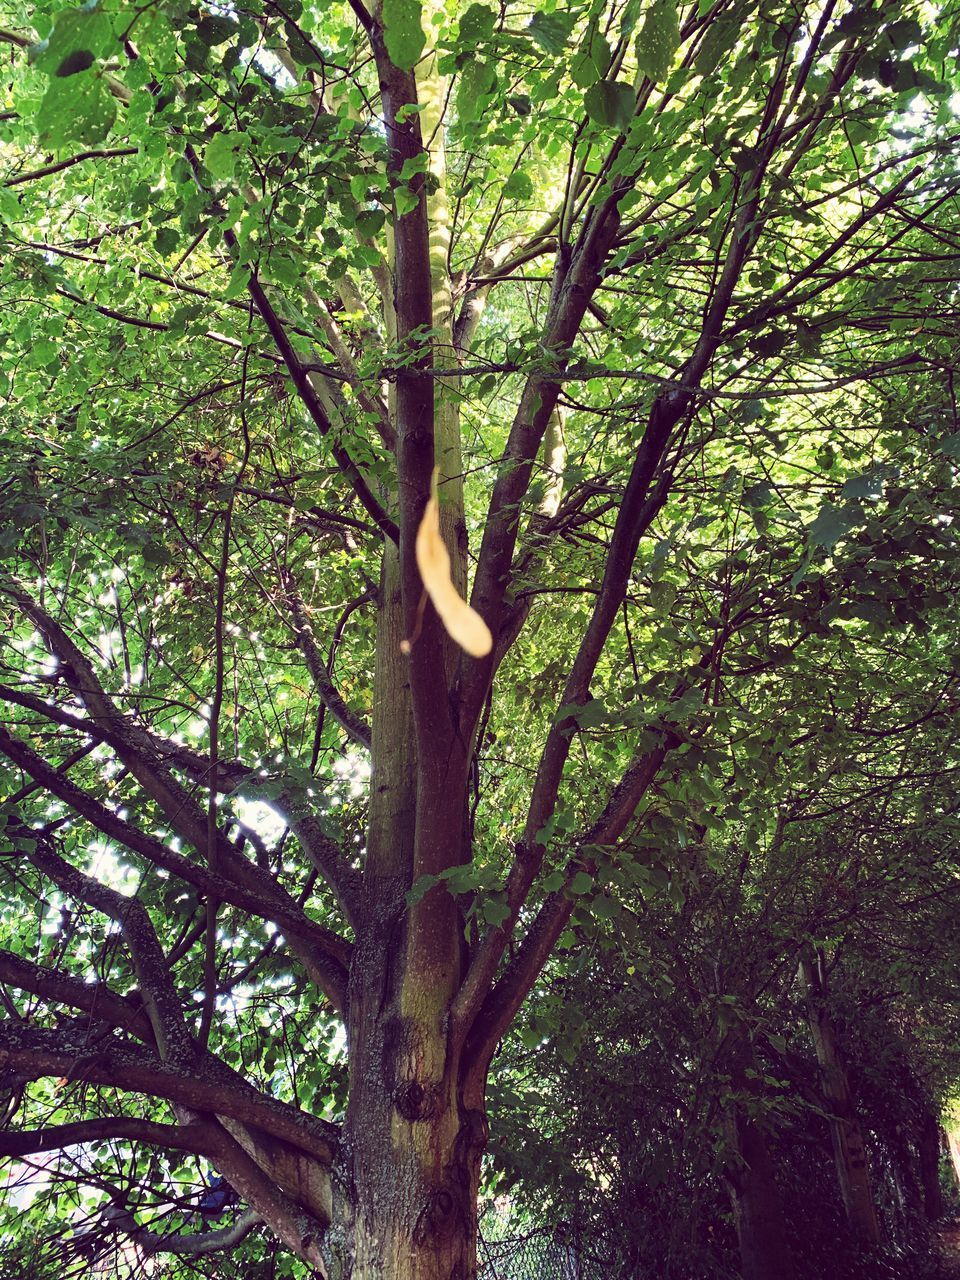 tree, plant, growth, tree trunk, trunk, branch, low angle view, day, tranquility, nature, no people, beauty in nature, forest, land, outdoors, green color, backgrounds, foliage, lush foliage, scenics - nature, tree canopy